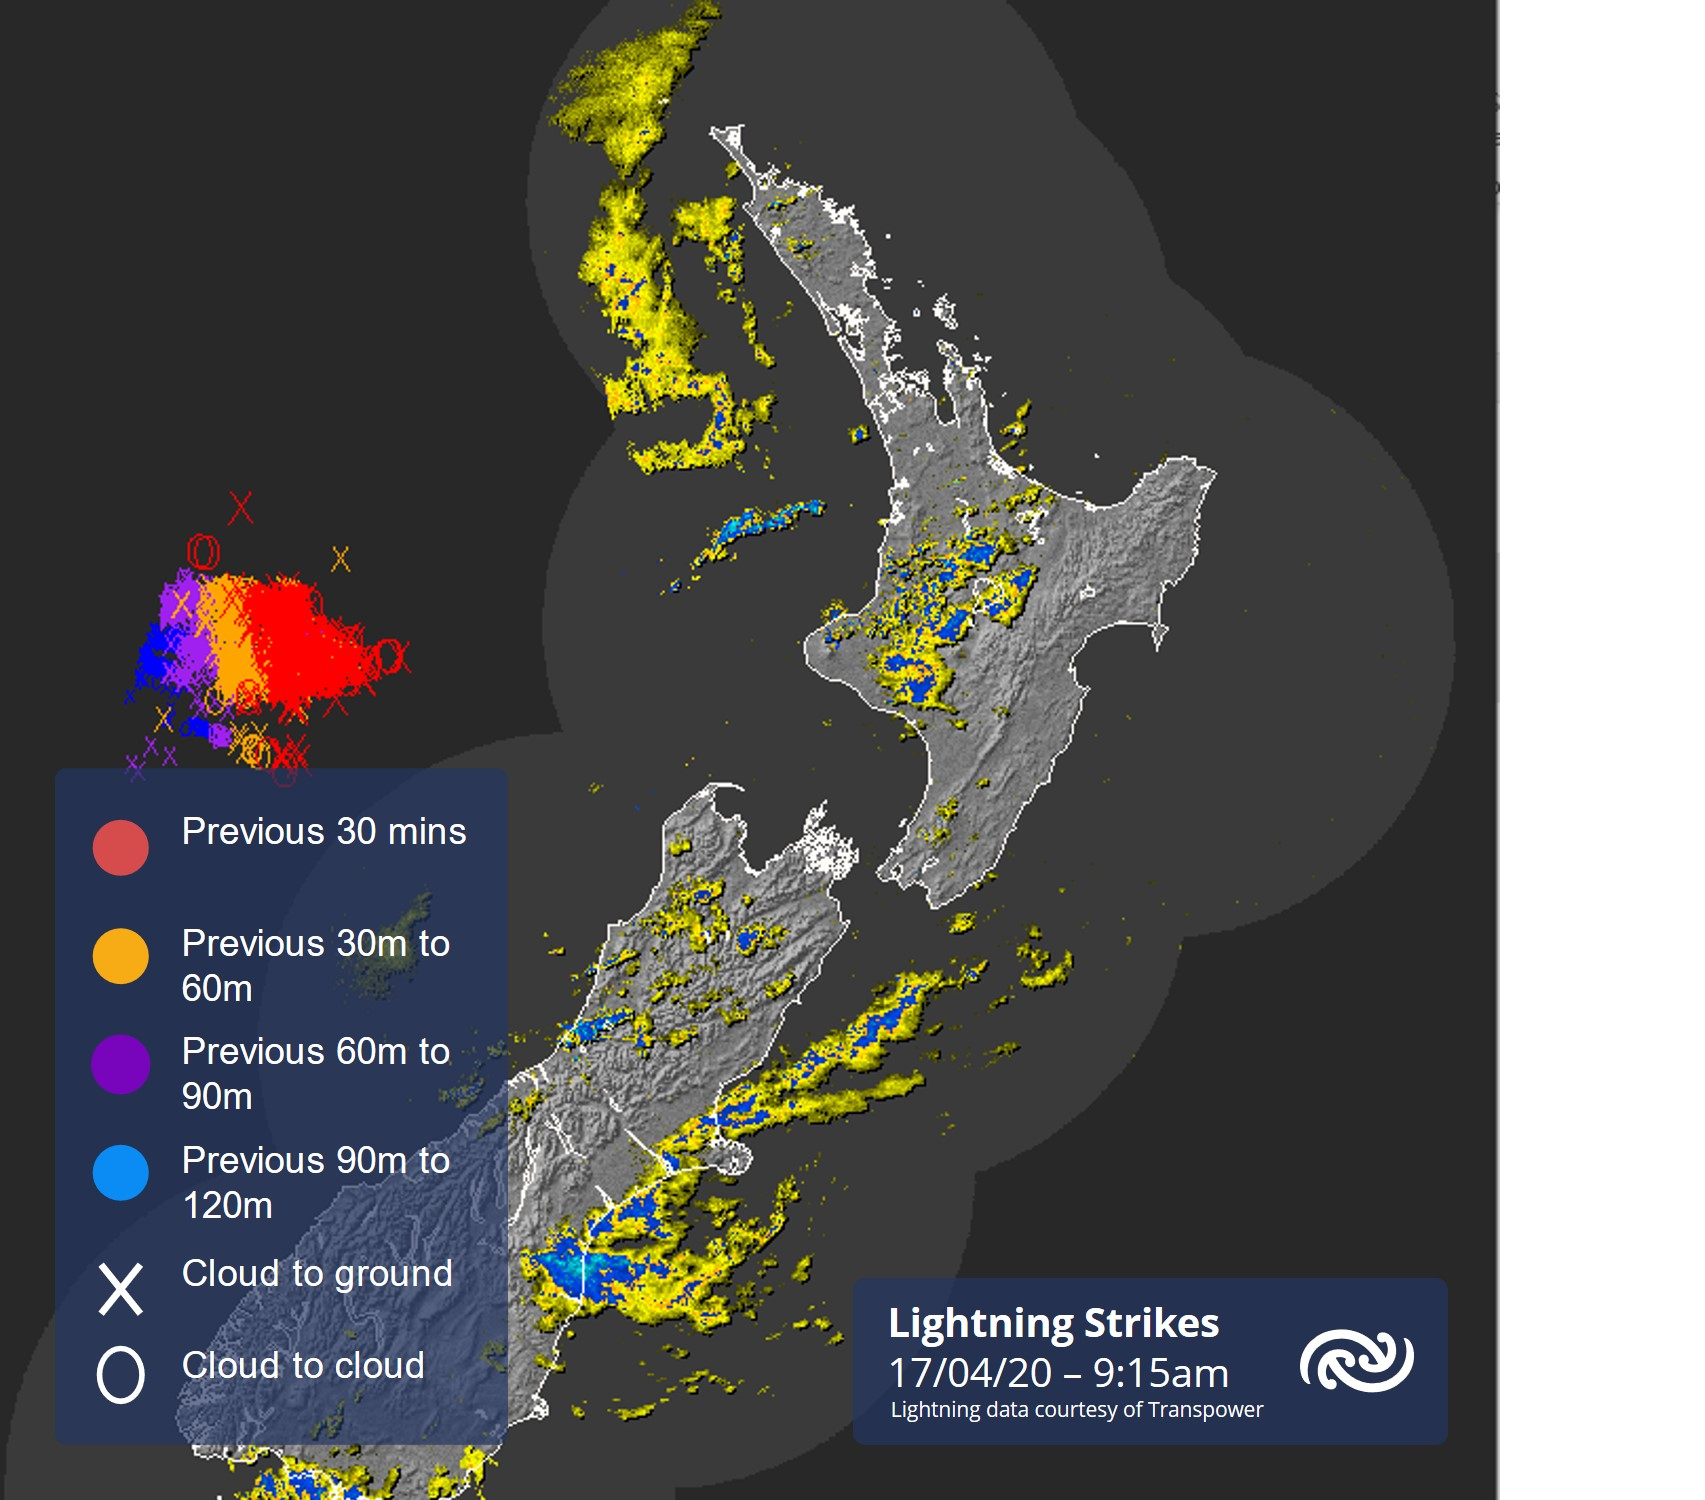 Lightning strikes we are now seeing to the west of NZ in the radar image below are forecast to move east today with the northwest corner of Buller and parts of western North Island likely to see localised thunderstorms. For more details see bit.ly/TSOutlook ^AC https://t.co/FpnaDjP2V8